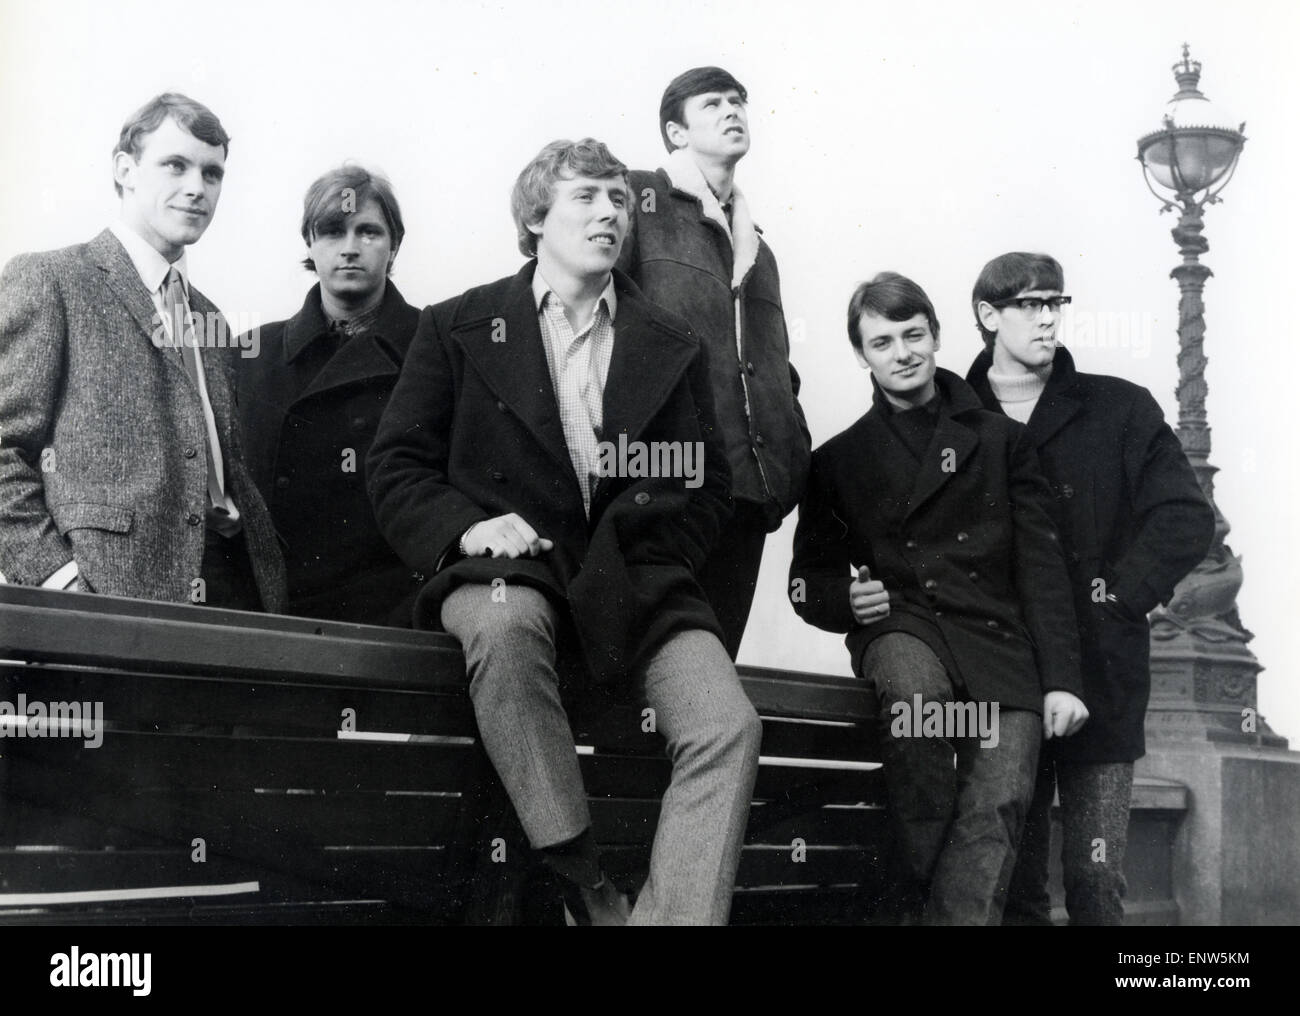 Image result for uk sixties band nashville teens